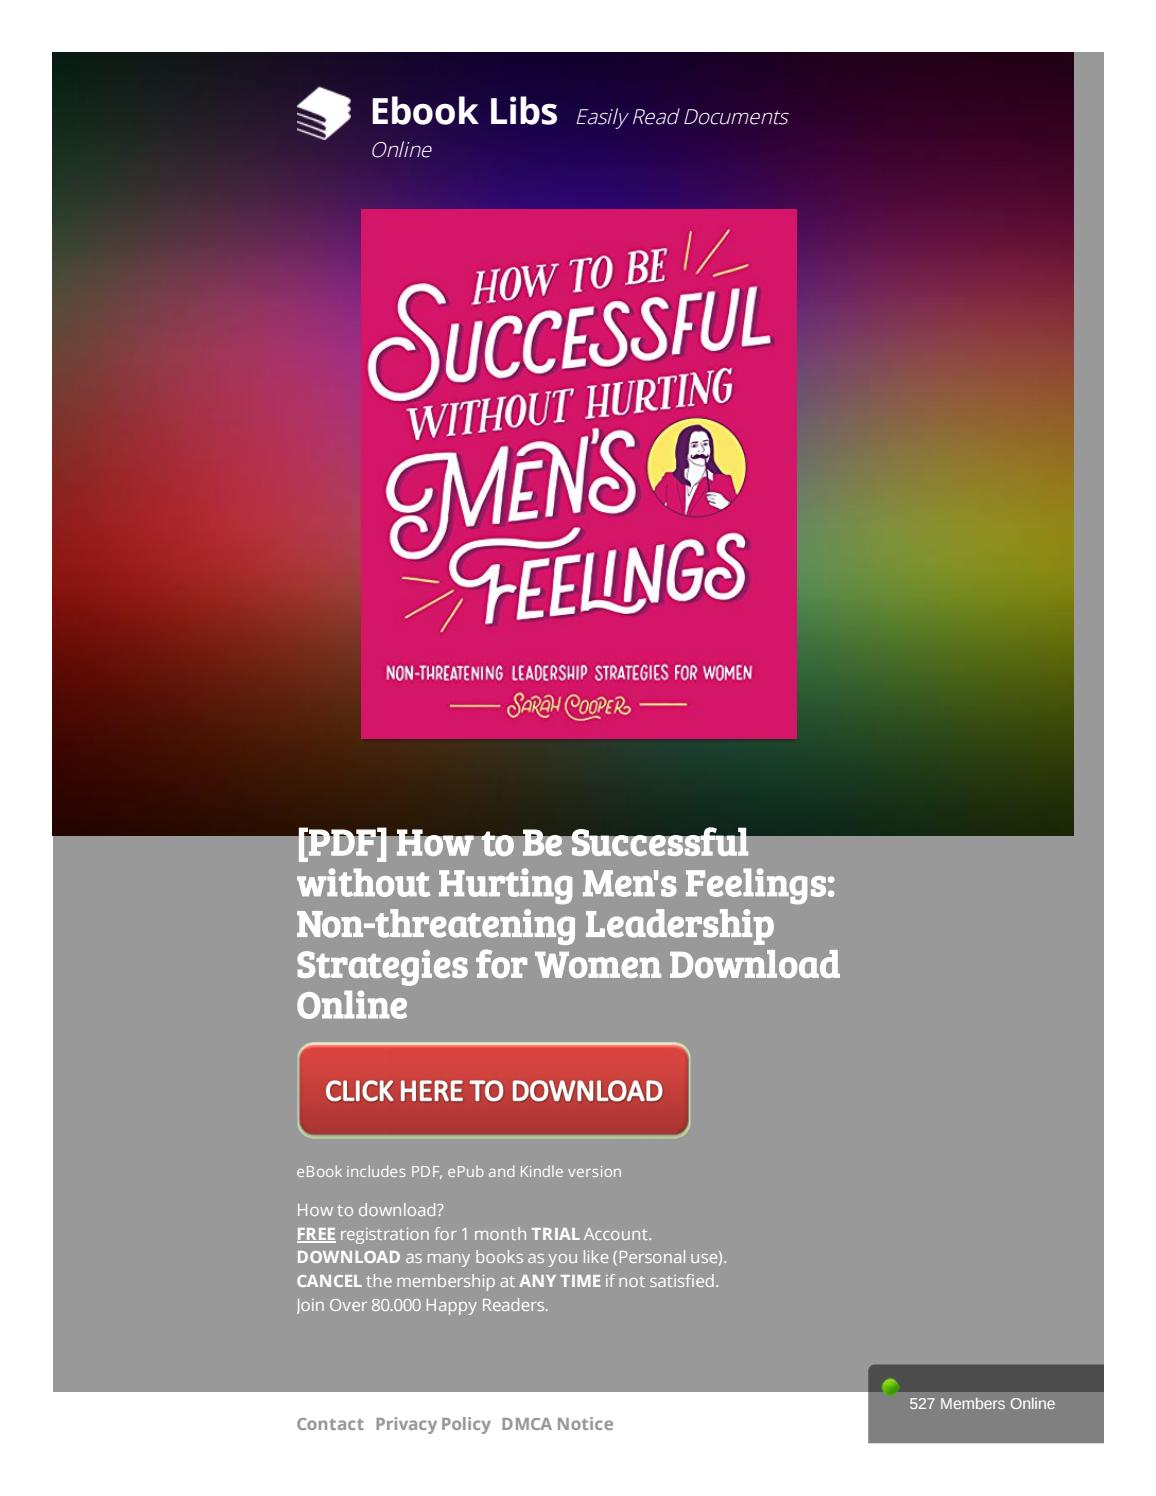 [PDF] How to Be Successful without Hurting Men's Feelings: Non-threatening  Leadership Strategies for by kitri17 - issuu